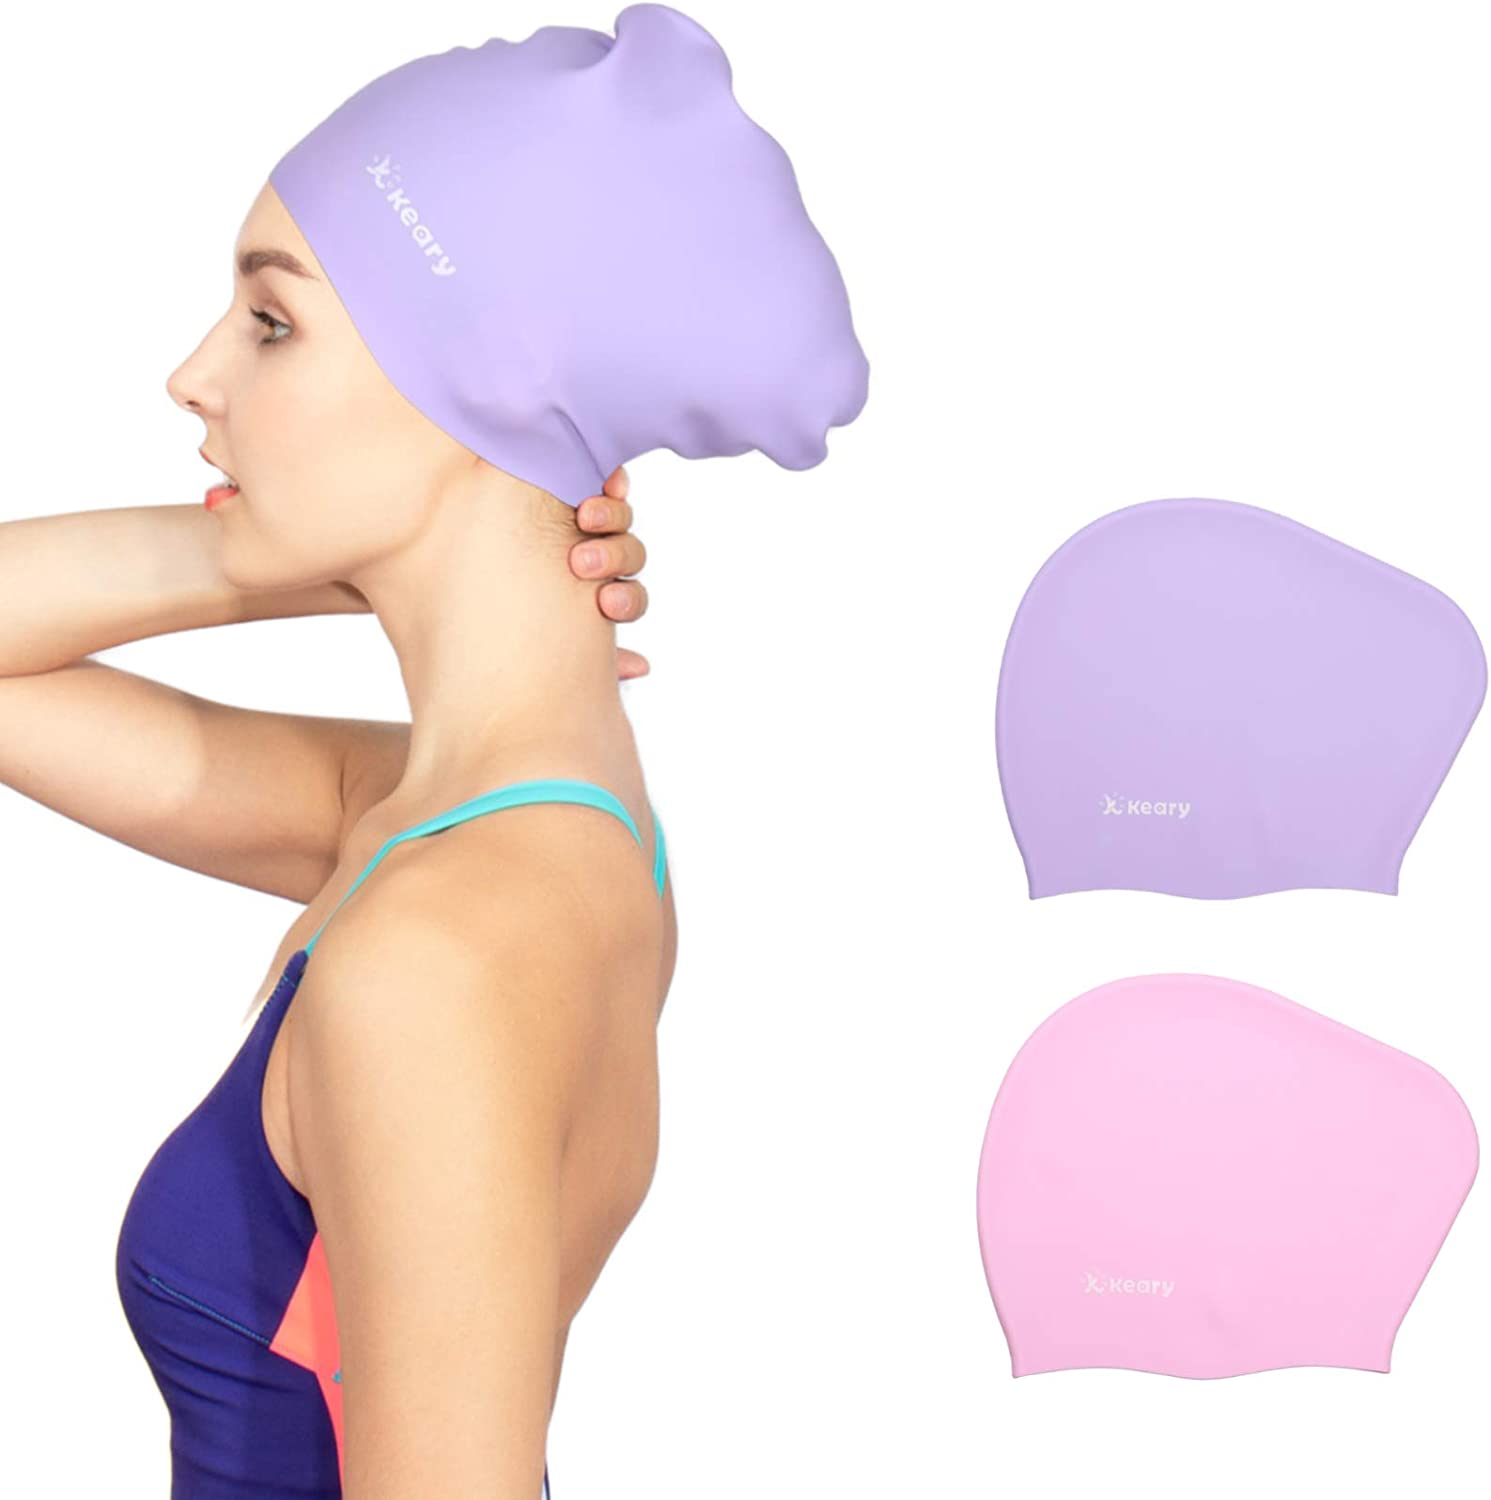 Keary 2 Pack Silicone Swim Cap for Long Hair Women Girls Waterproof Pool Swimming Cap Cover Ears to Keep Your Hair Dry, 3D Ergonomic Stretchable Durable and Anti-Slip, Easy to Put On and Off : Sports & Outdoors